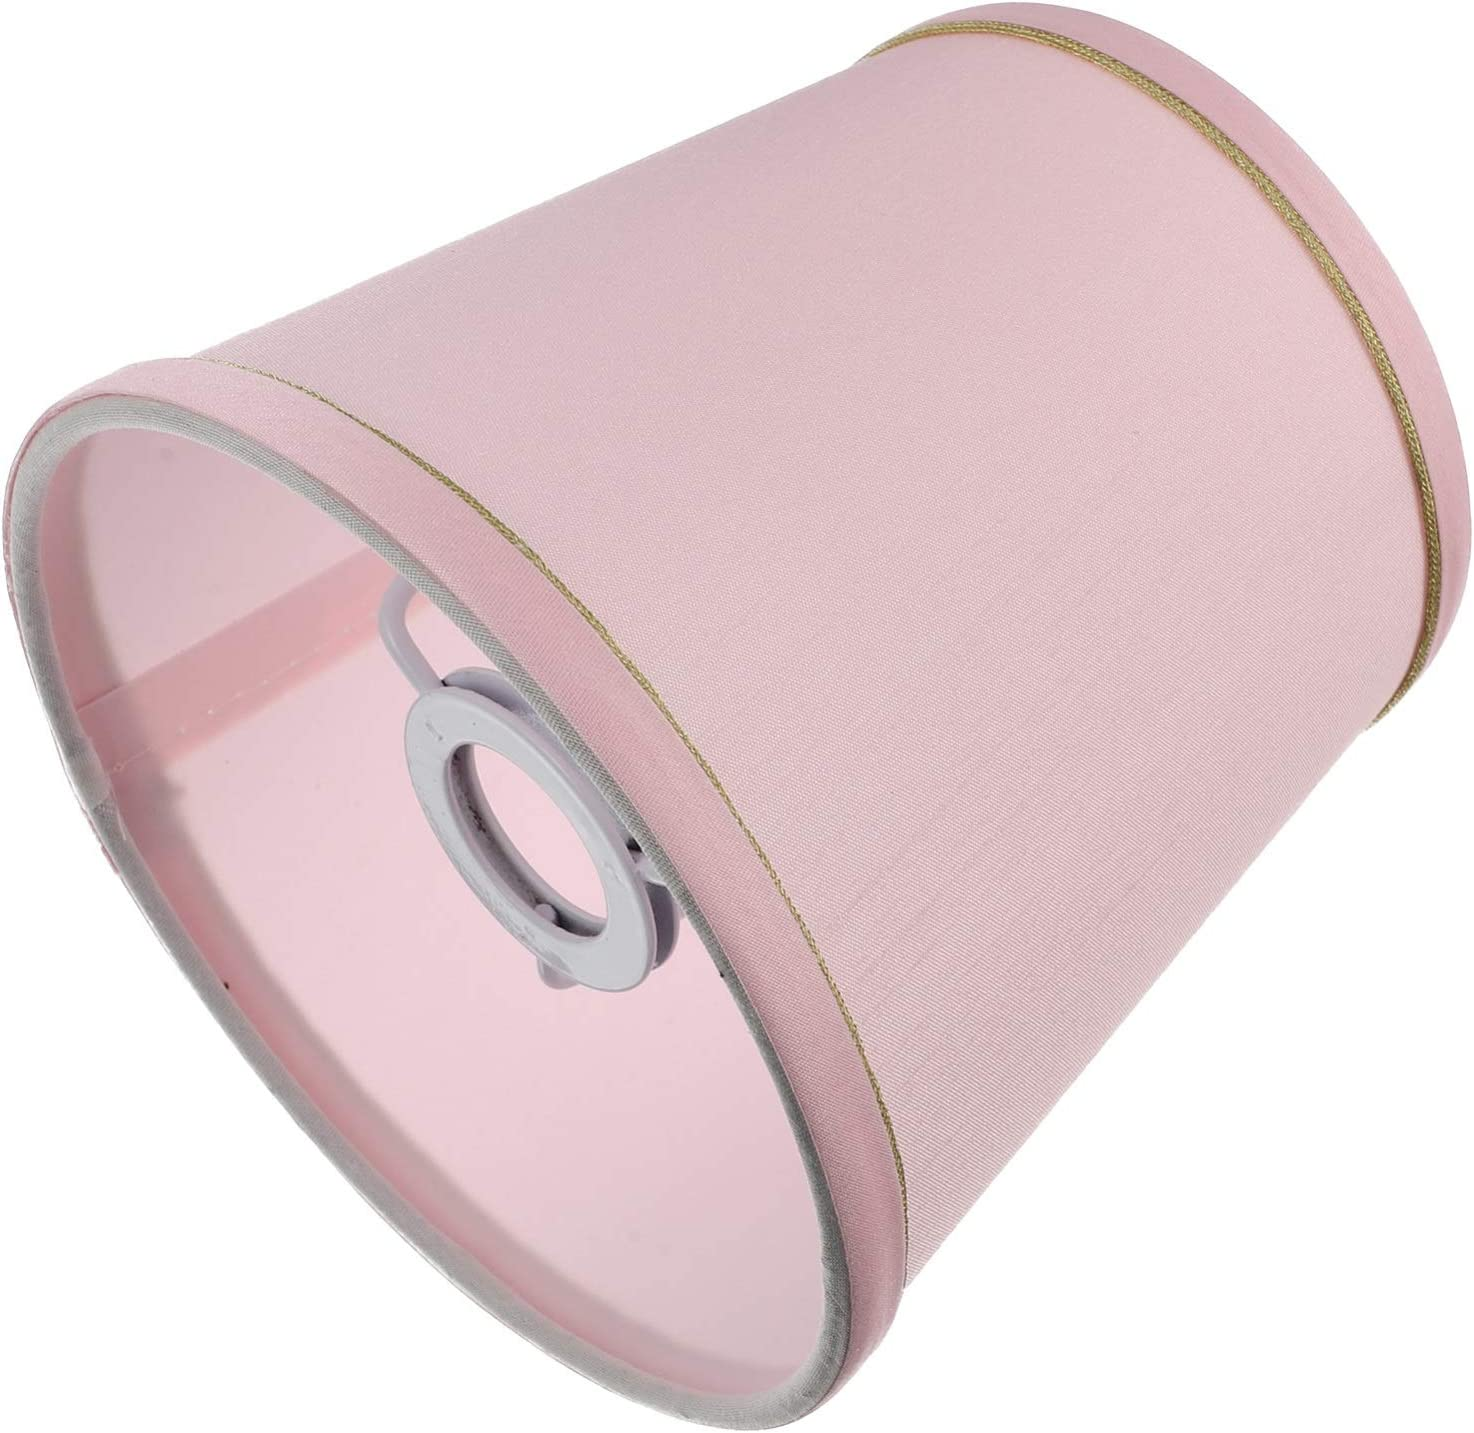 Mobestech Pink Table Lamp Shade Alucset Drum Fabric Lampshade Modern Barrel Light Lamp Shade Cover Chandelier Cloth Fixture Lamp Shade for Home Office